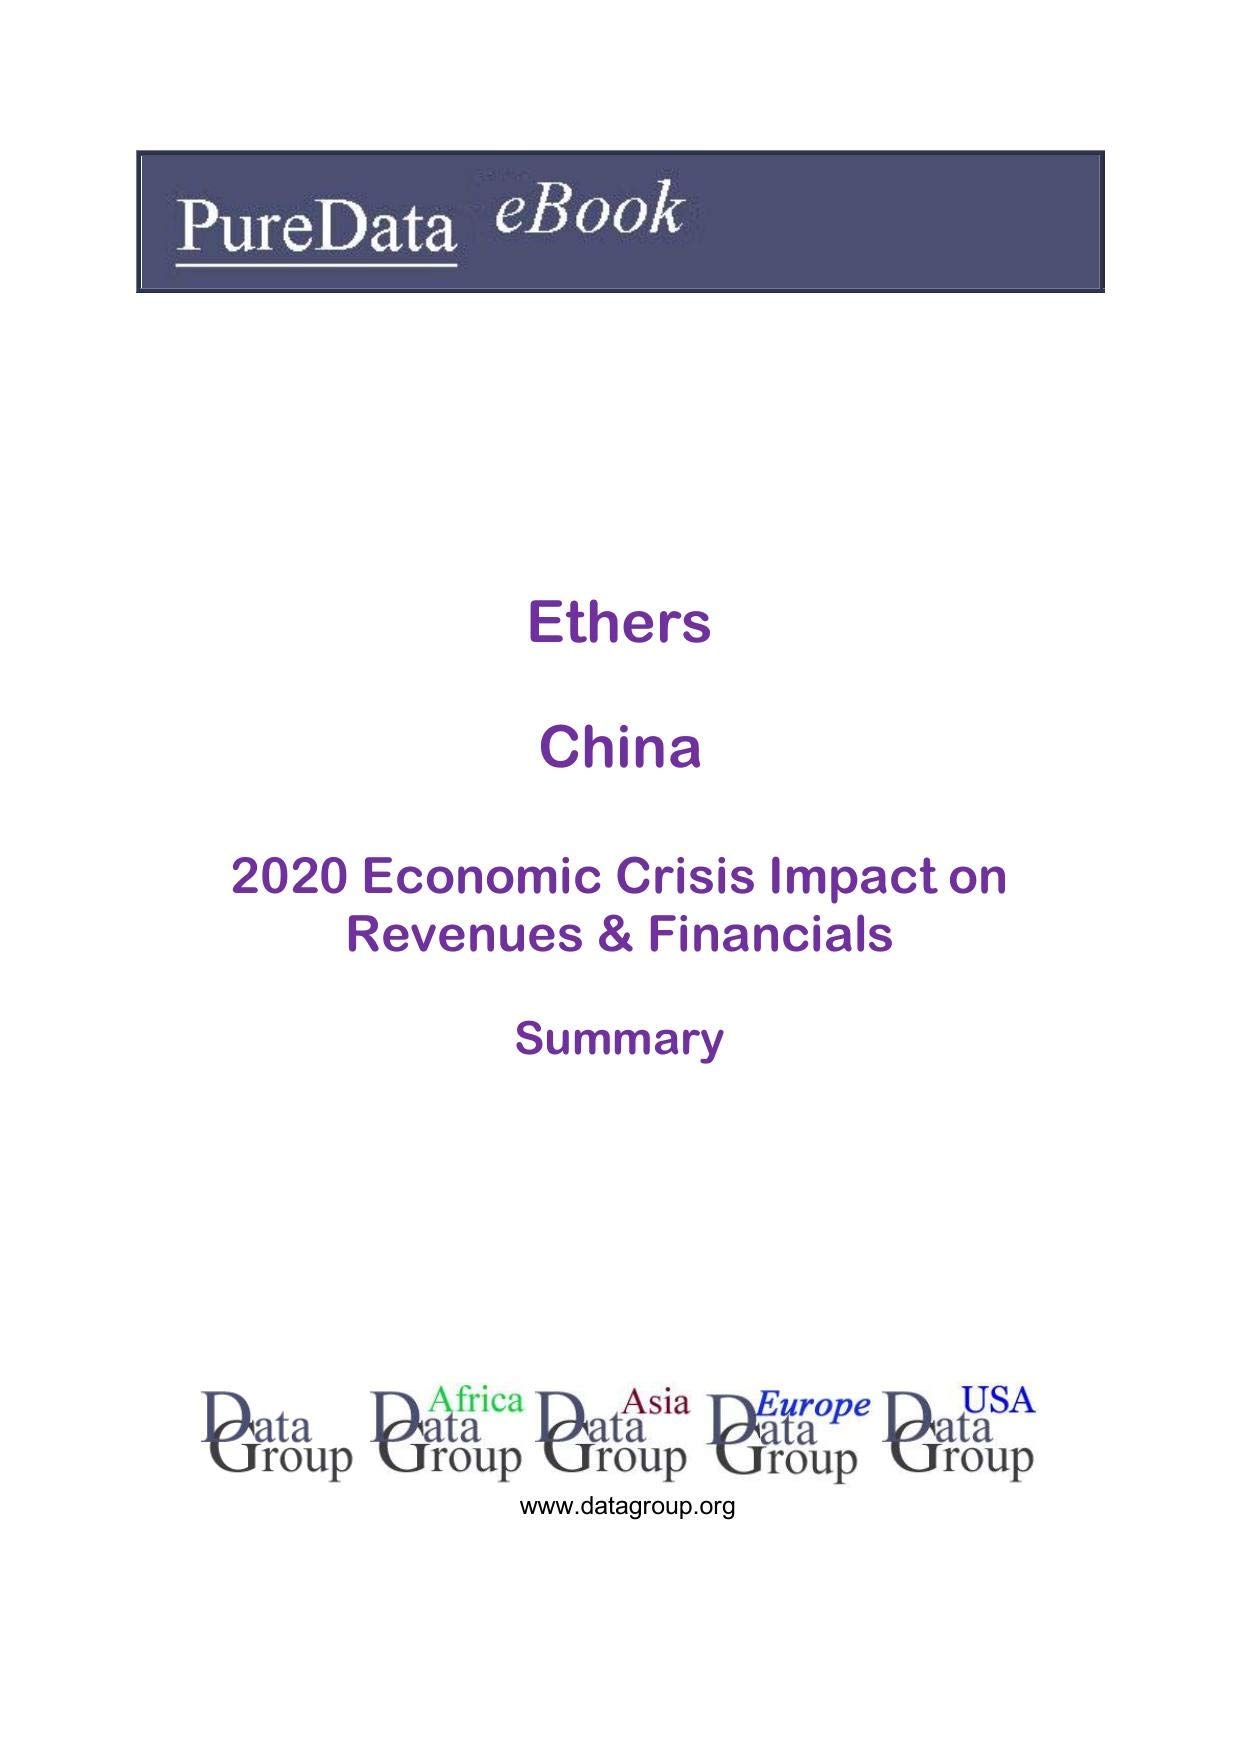 Ethers China Summary: 2020 Economic Crisis Impact on Revenues & Financials